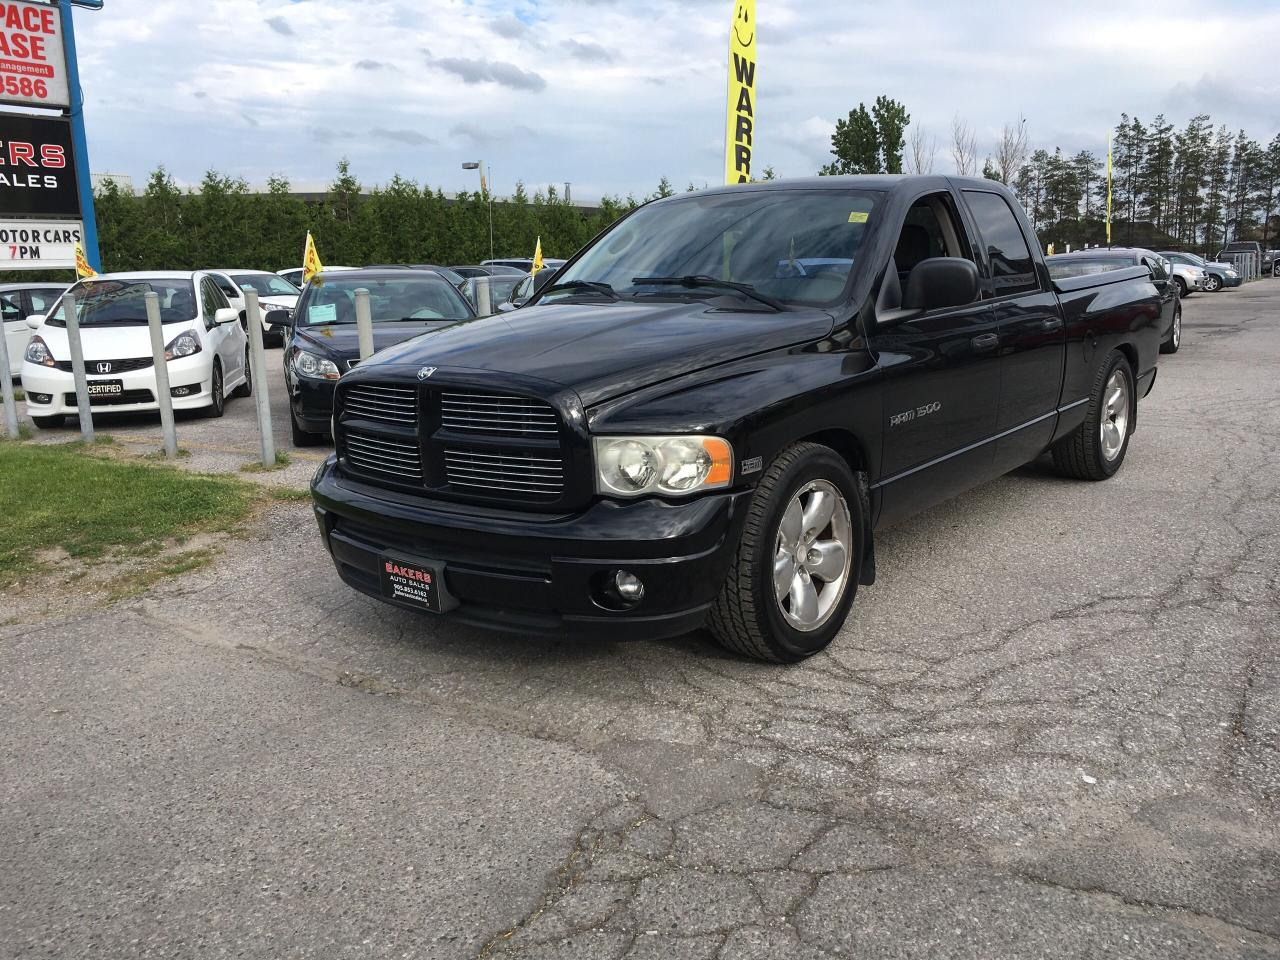 Used 2003 Dodge Ram 1500 SLT for Sale in Newmarket, Ontario